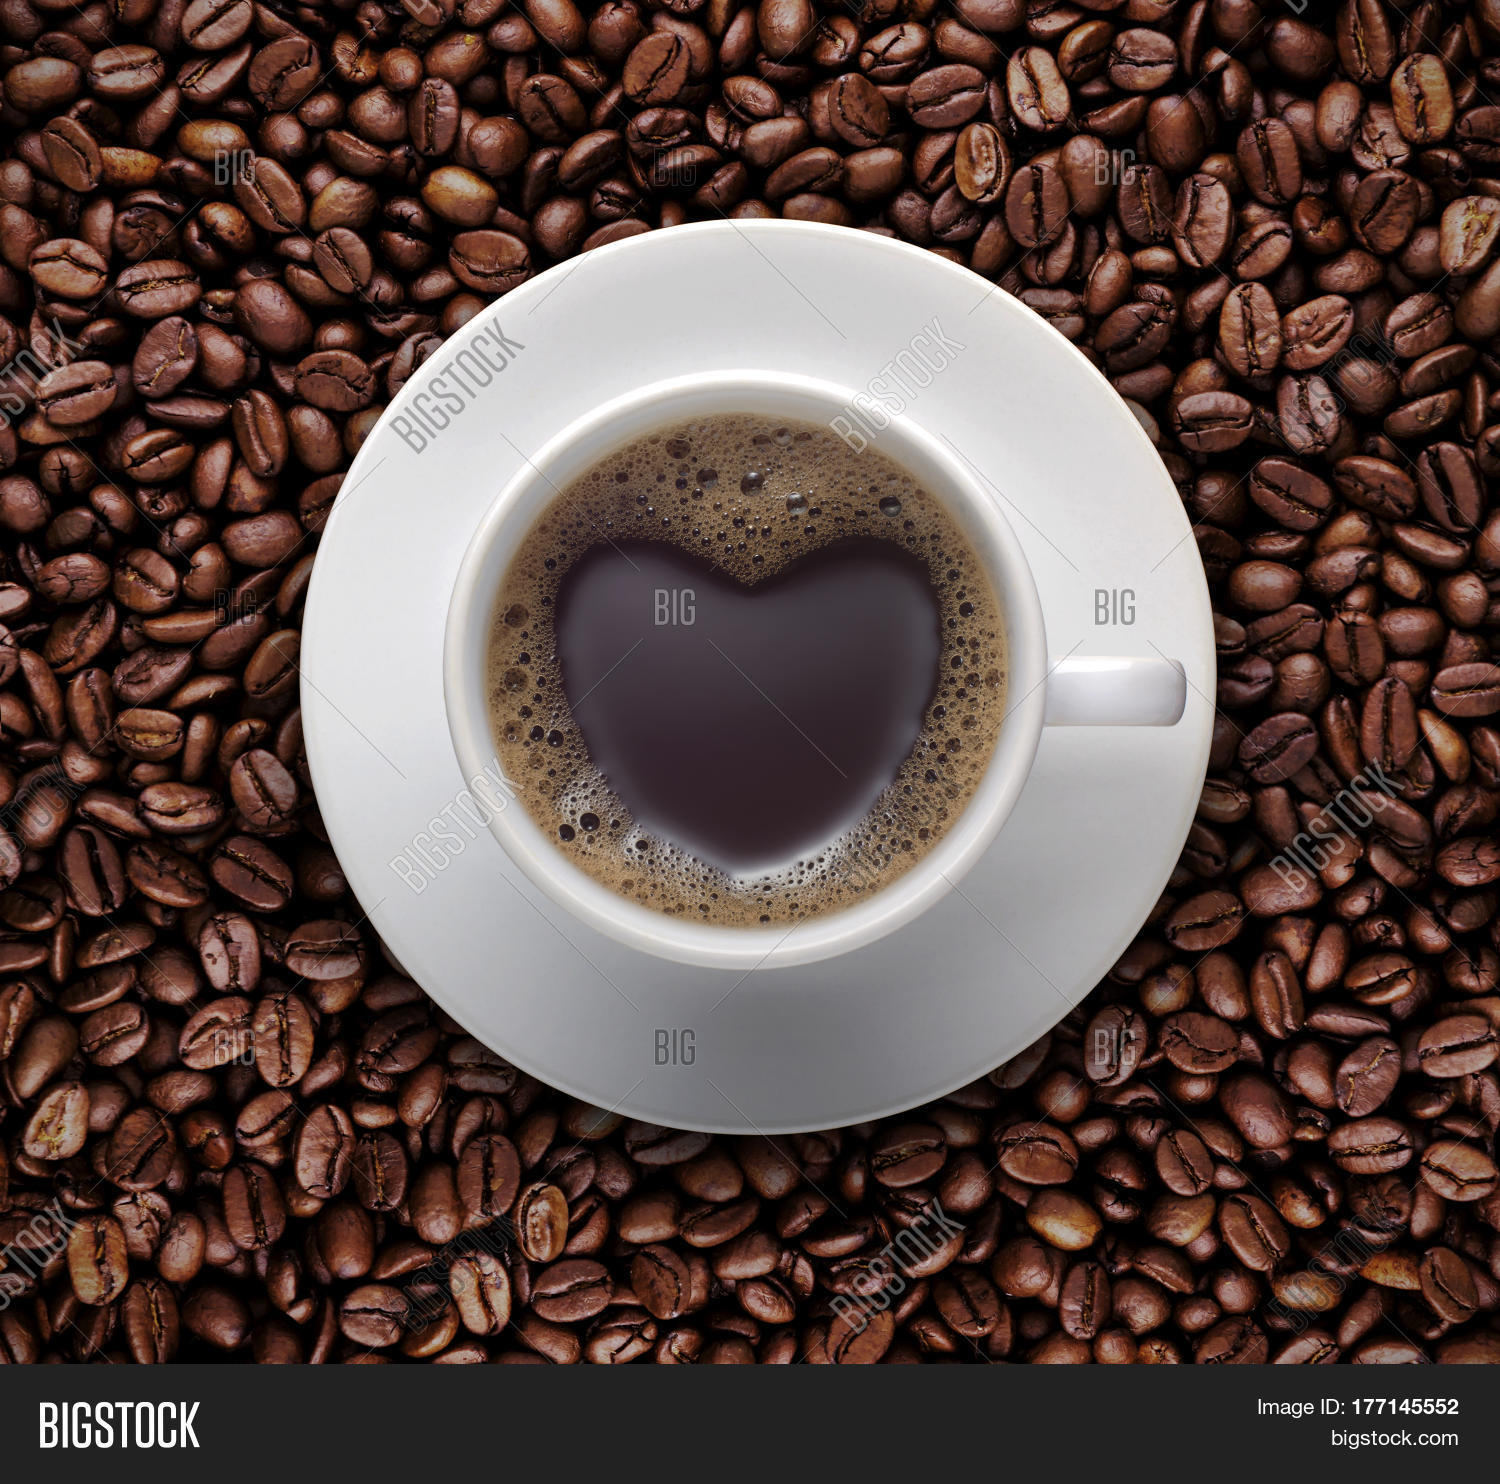 Coffee lover sign black coffee image photo bigstock coffee lover sign black coffee cup on top pile of raw brown coffee beans with voltagebd Images